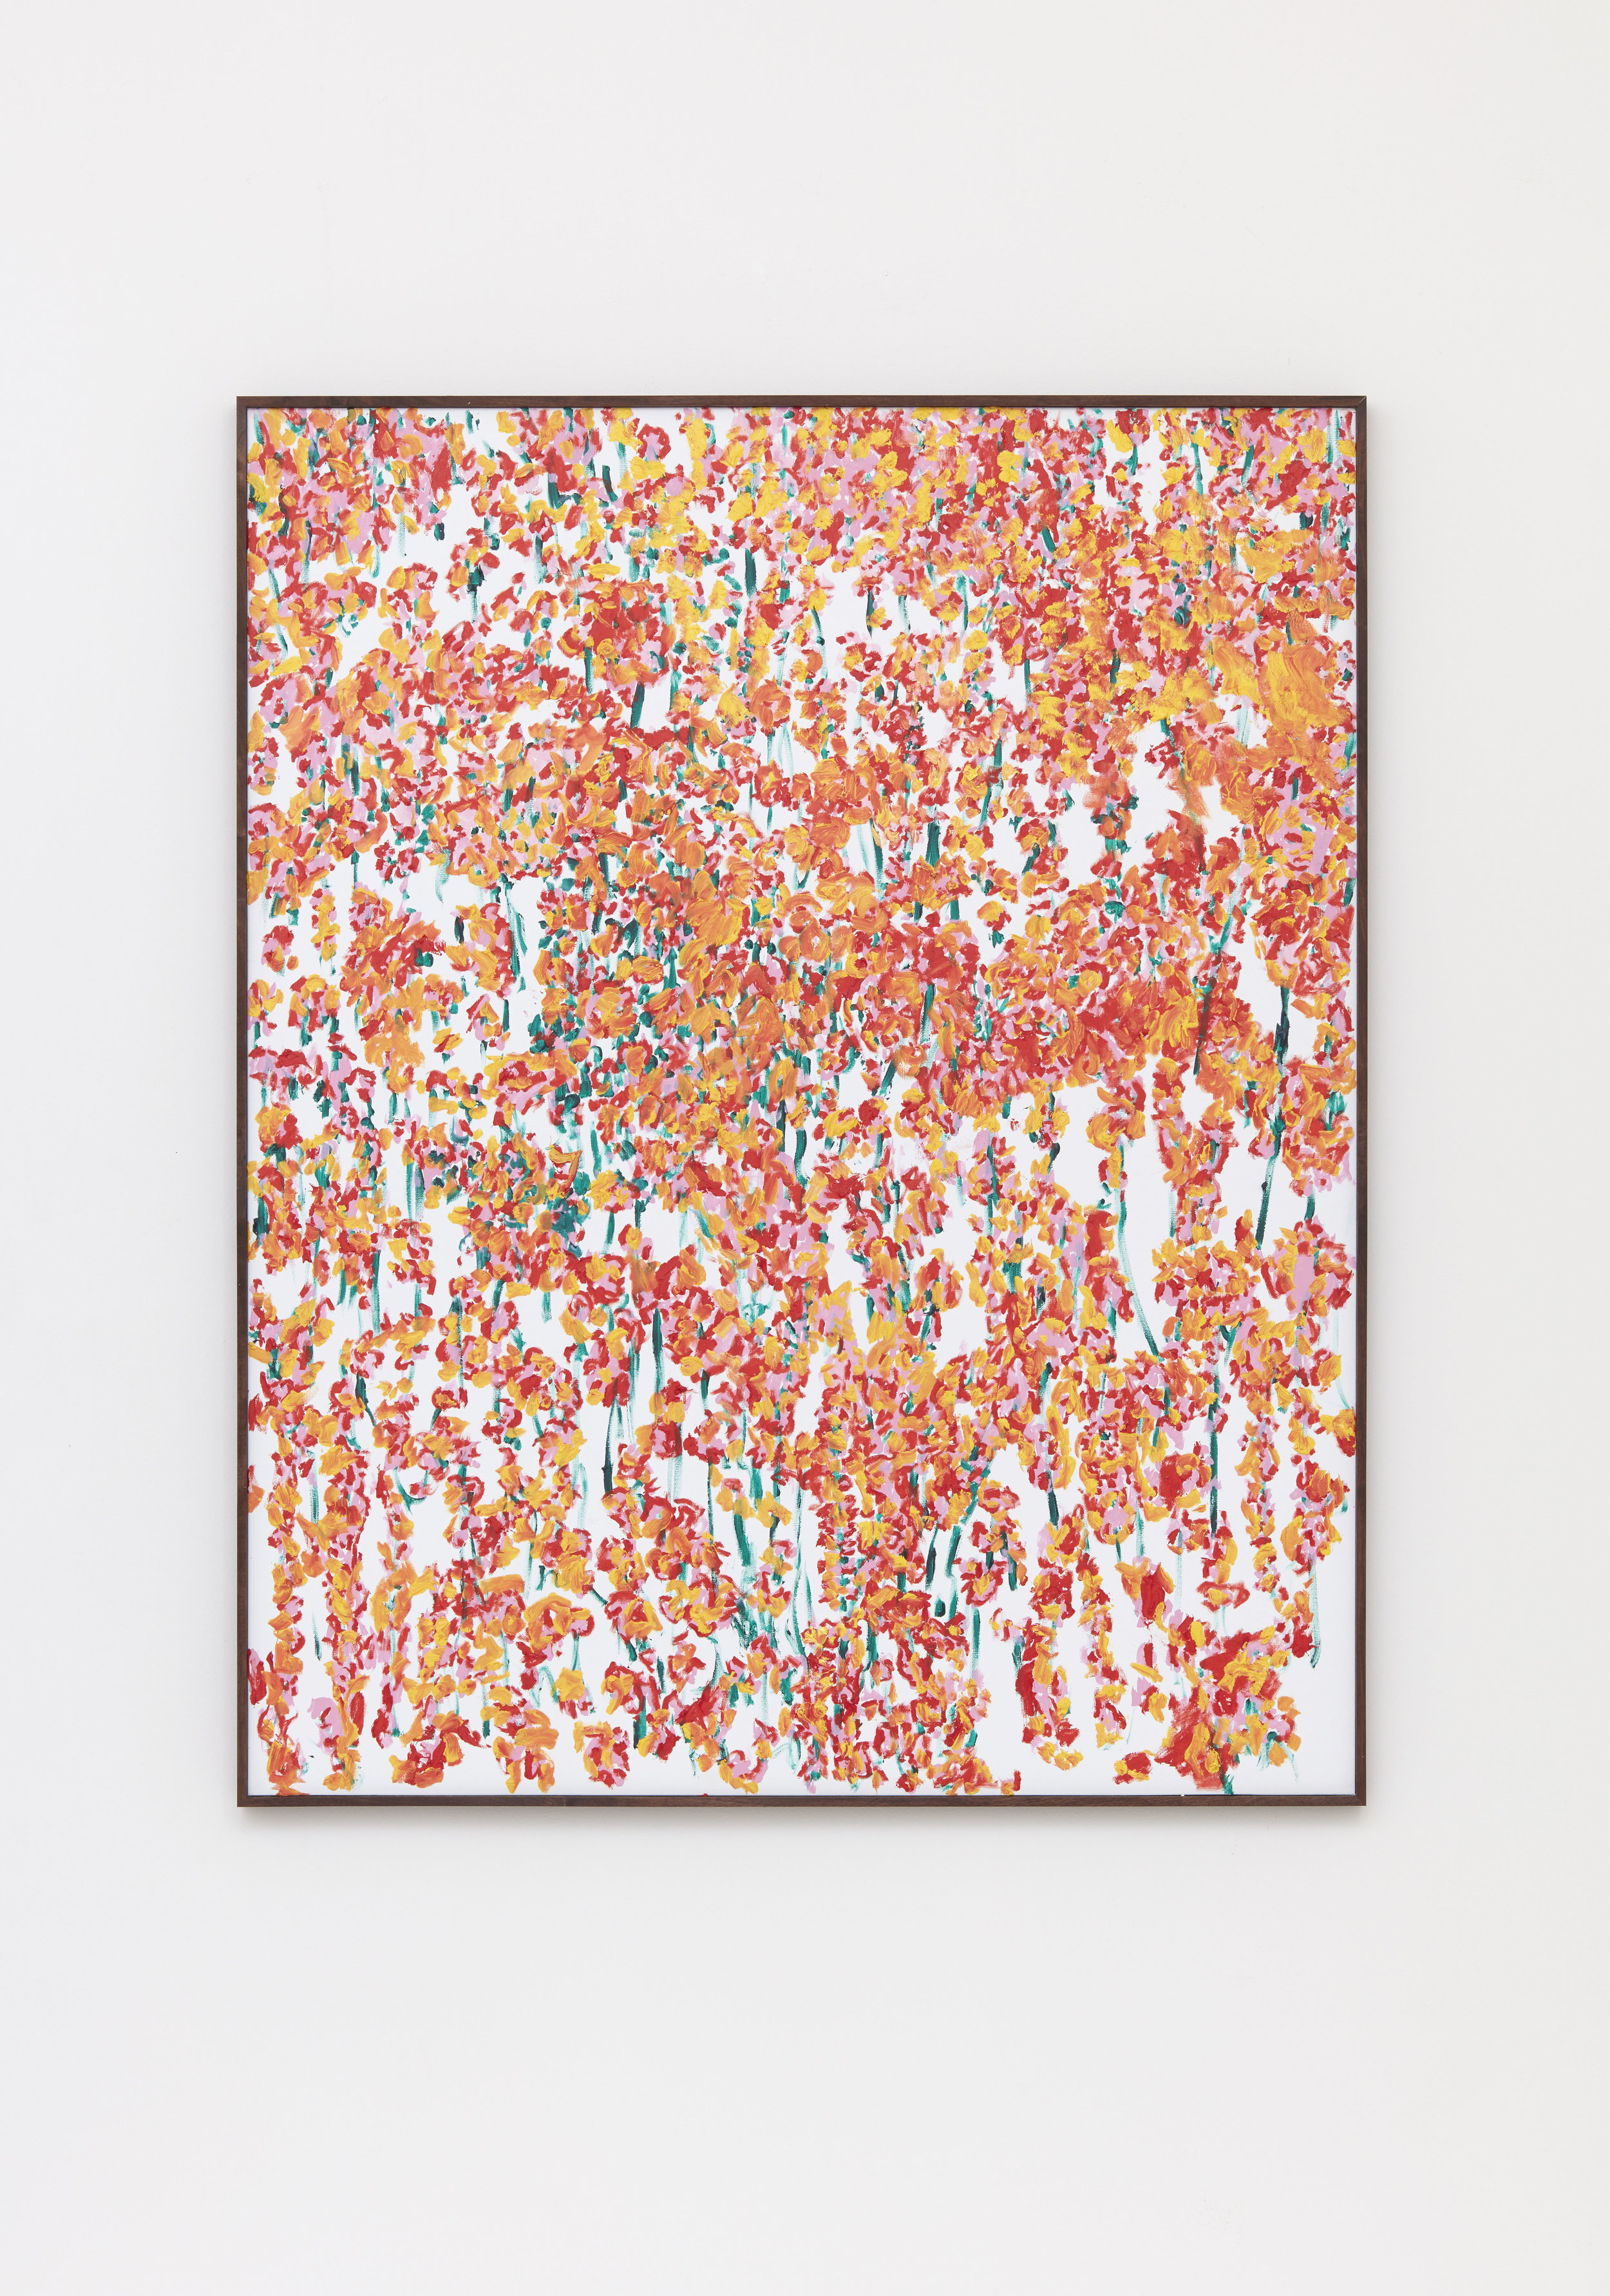 Eating The Color Off Everything, 2017 oil and acrylic on canvas in artist made walnut frame 155 x 124,5 cm - 61 1/32 x 49 1/32 inches